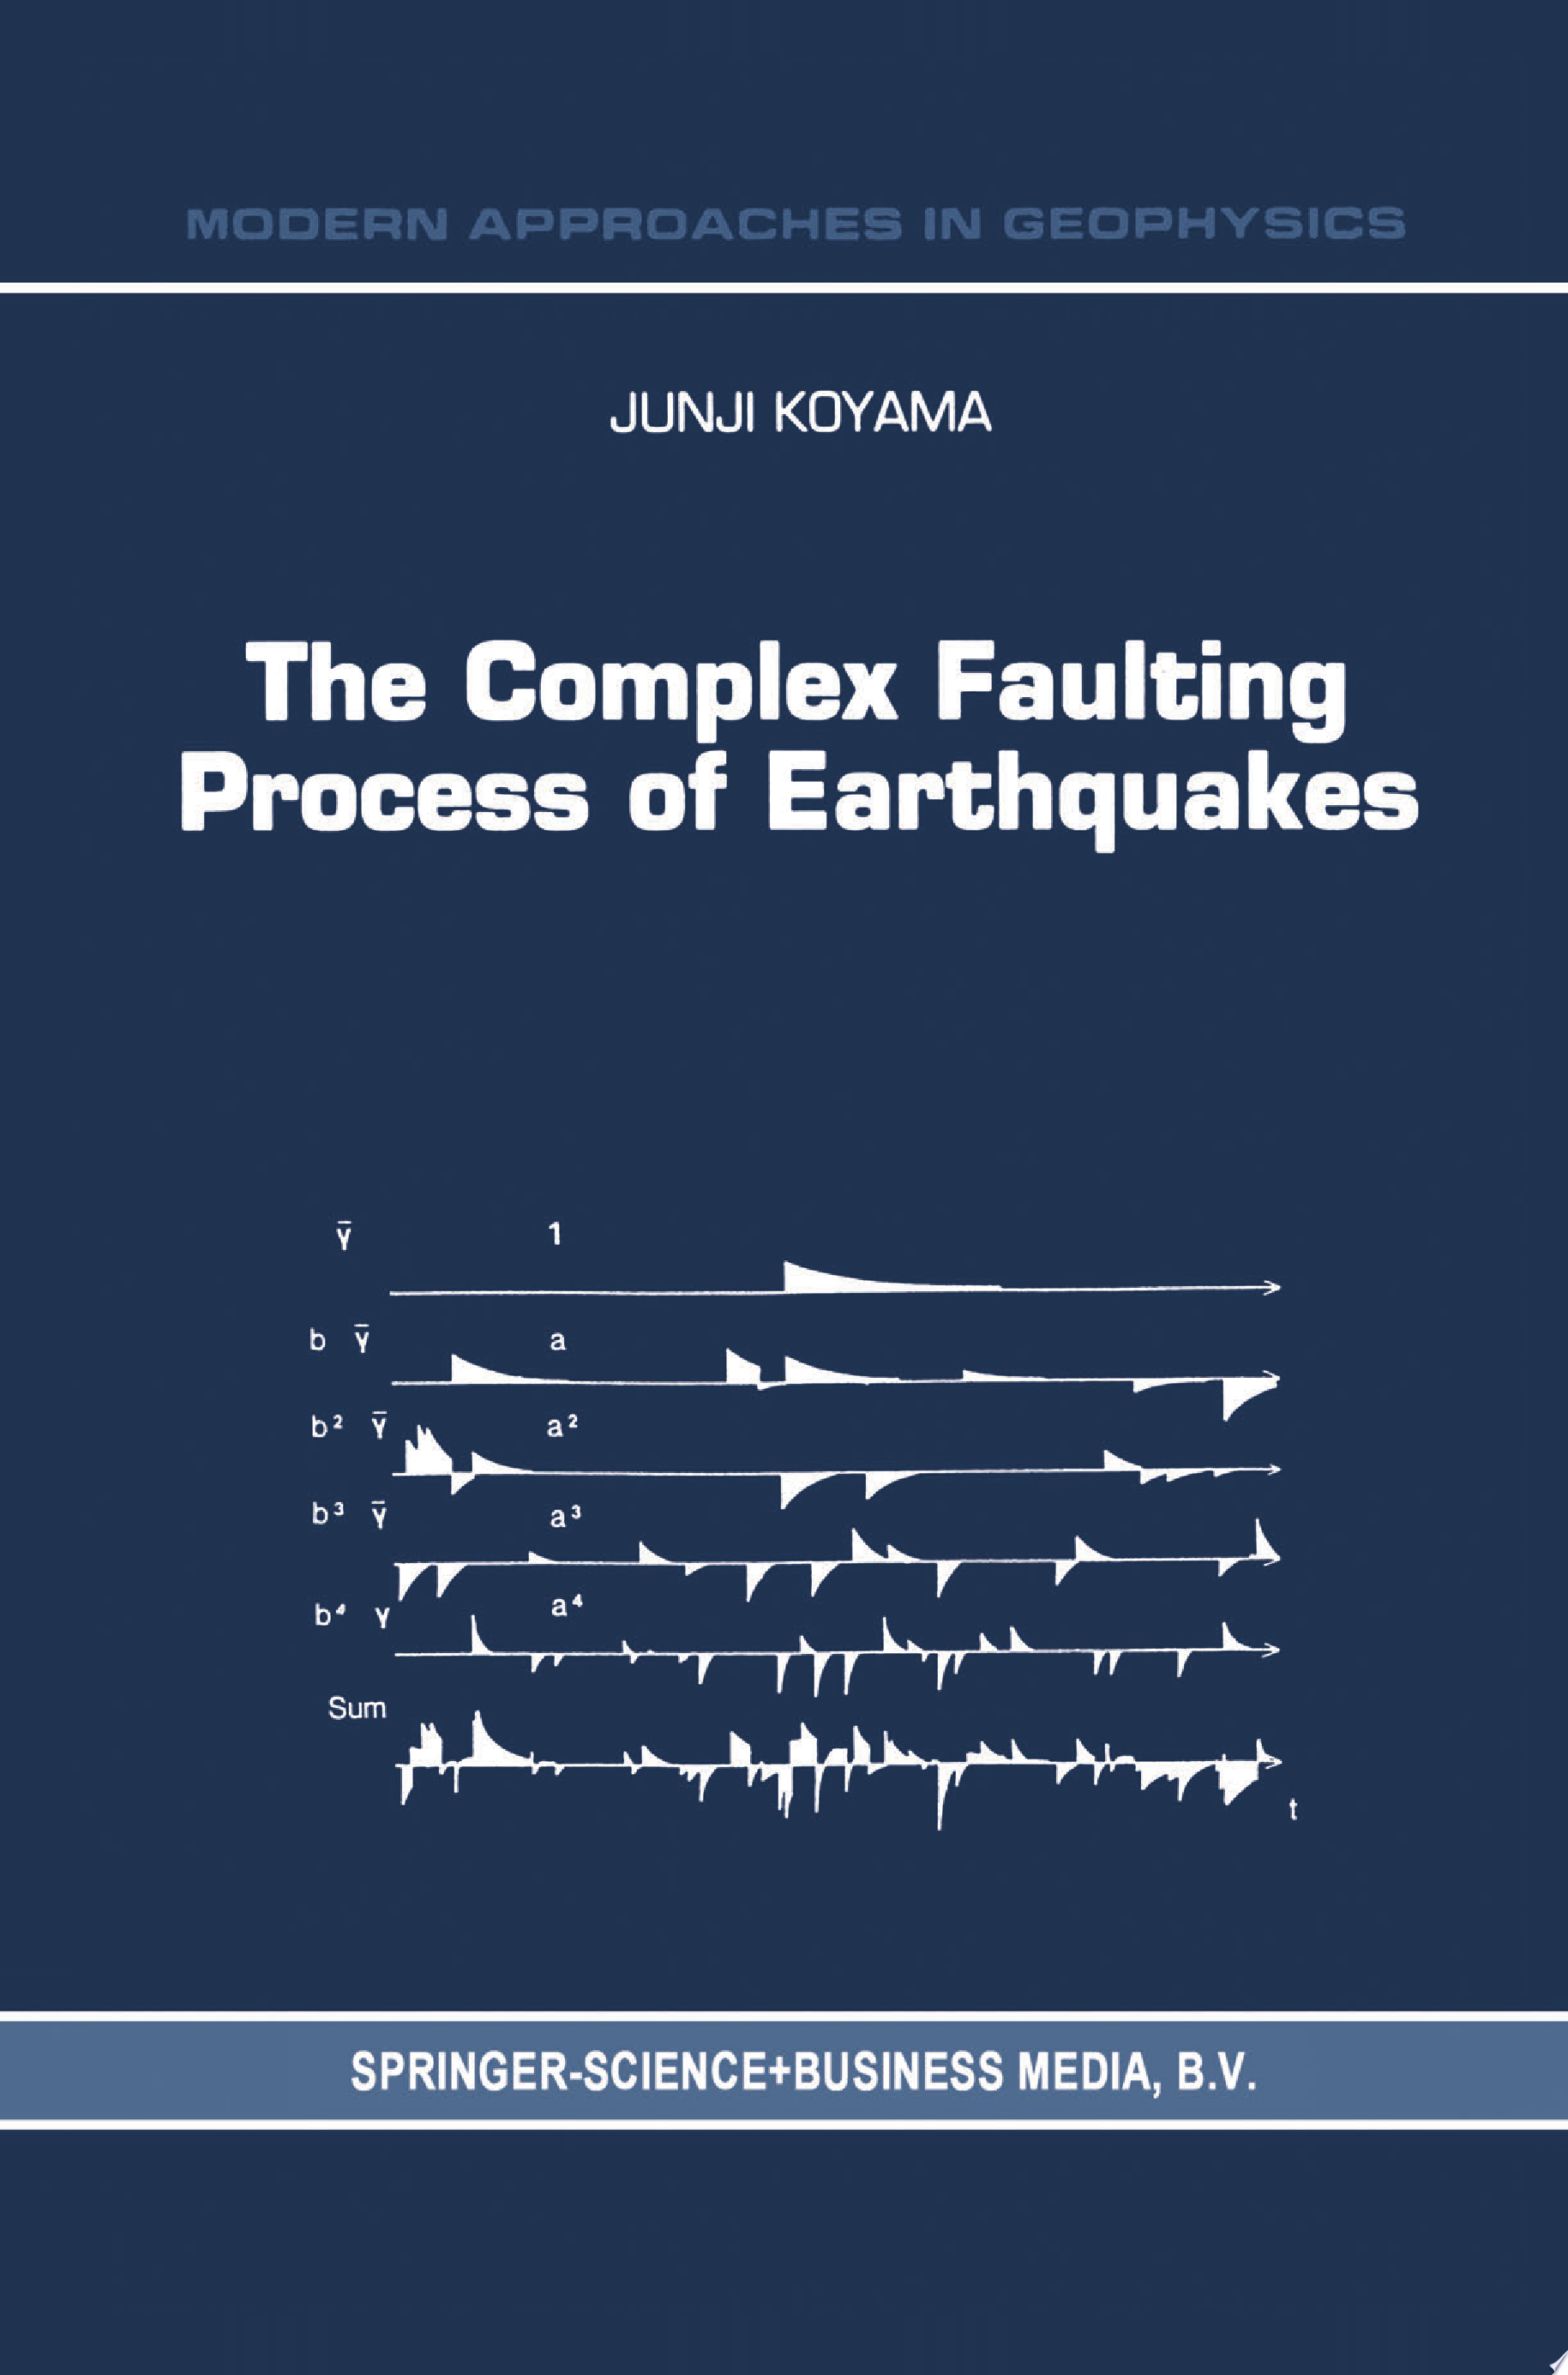 The Complex Faulting Process of Earthquakes